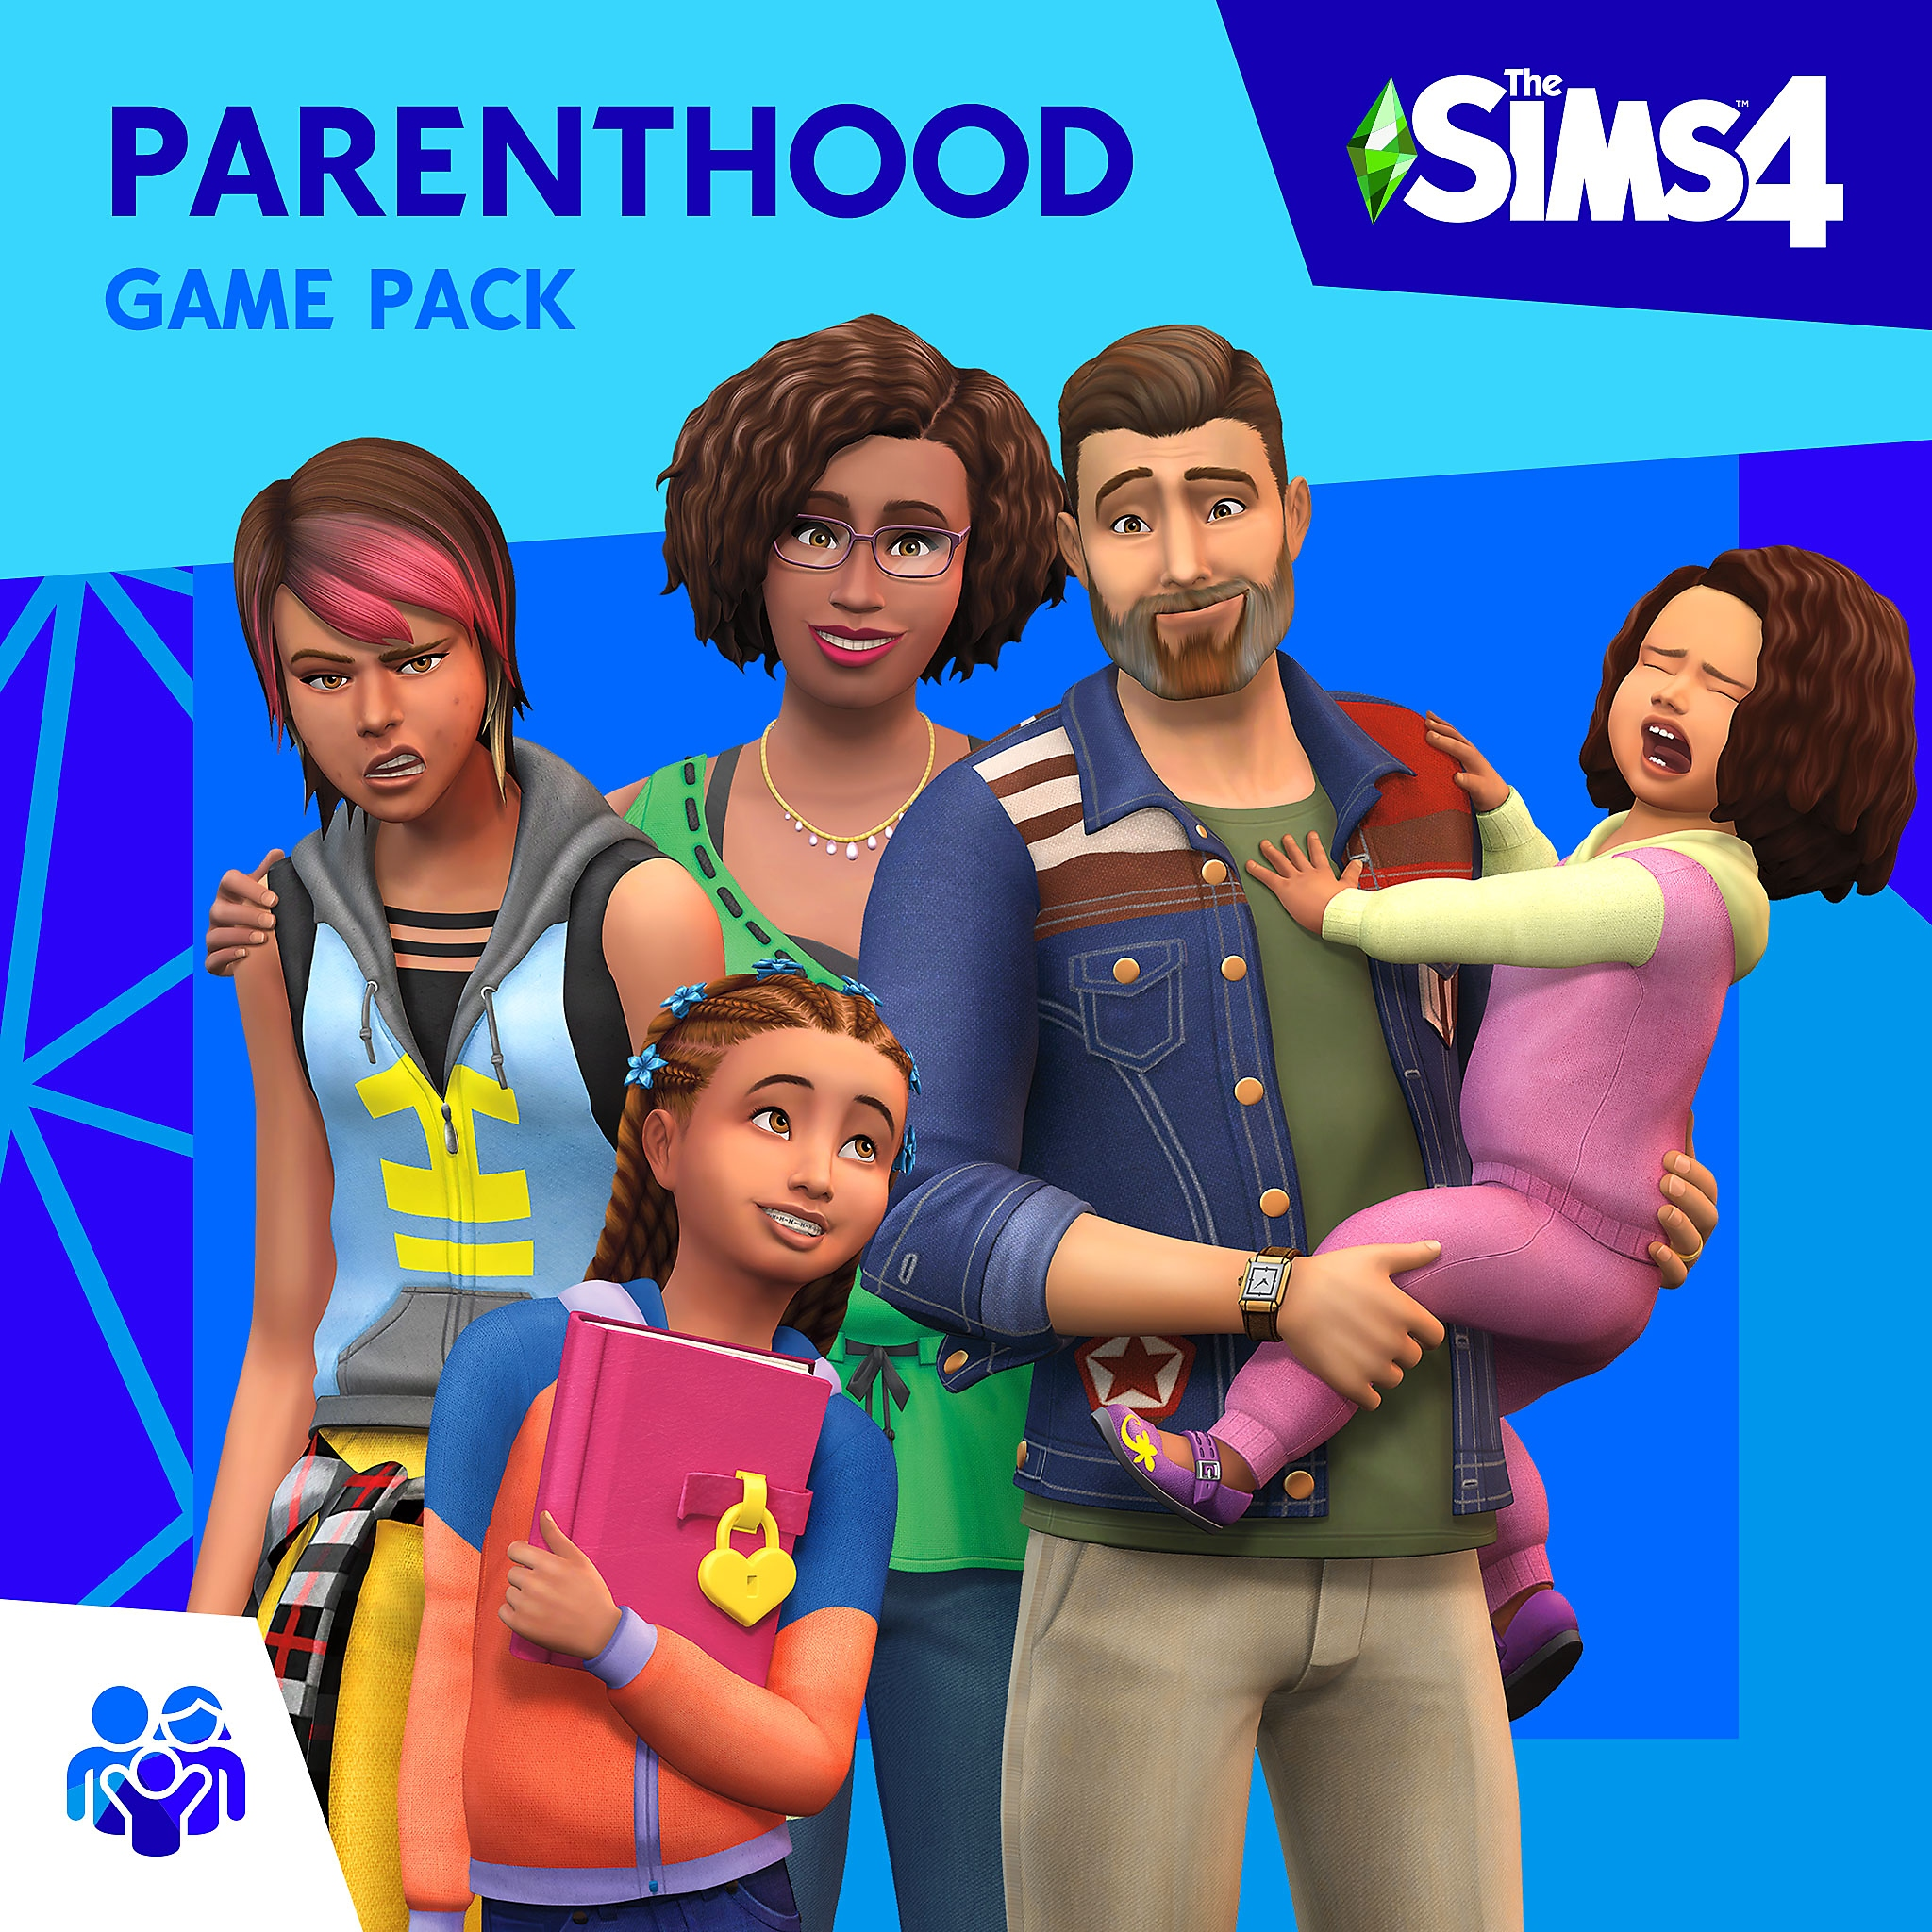 Parenthood Game Pack